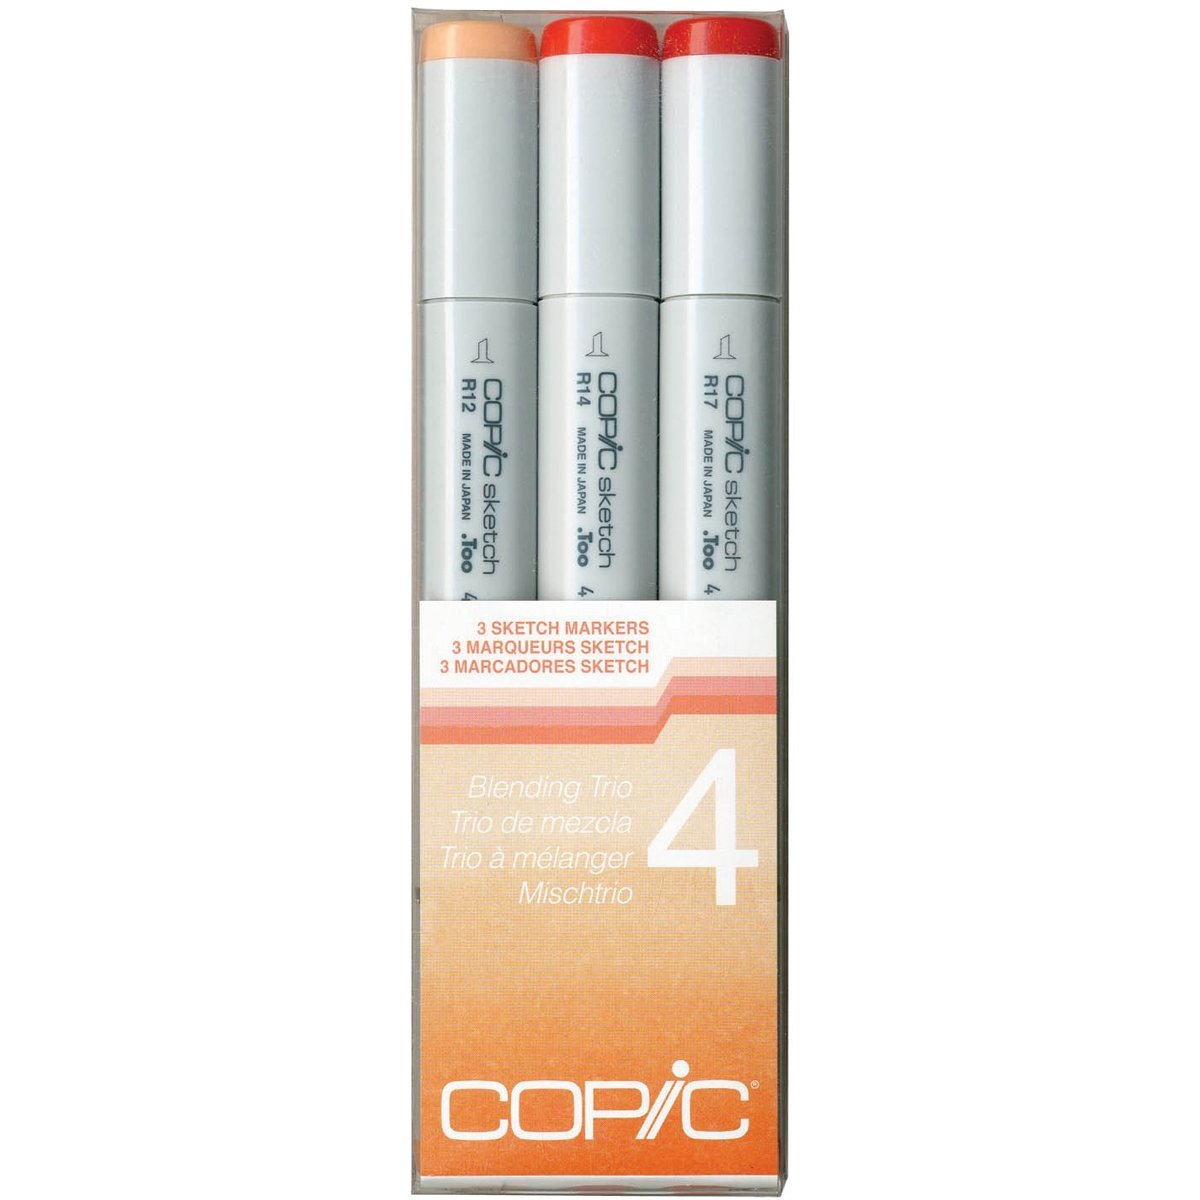 Copic Marker Sketch Blending Trio Markers, SBT 2, 3-Pack SBT-2